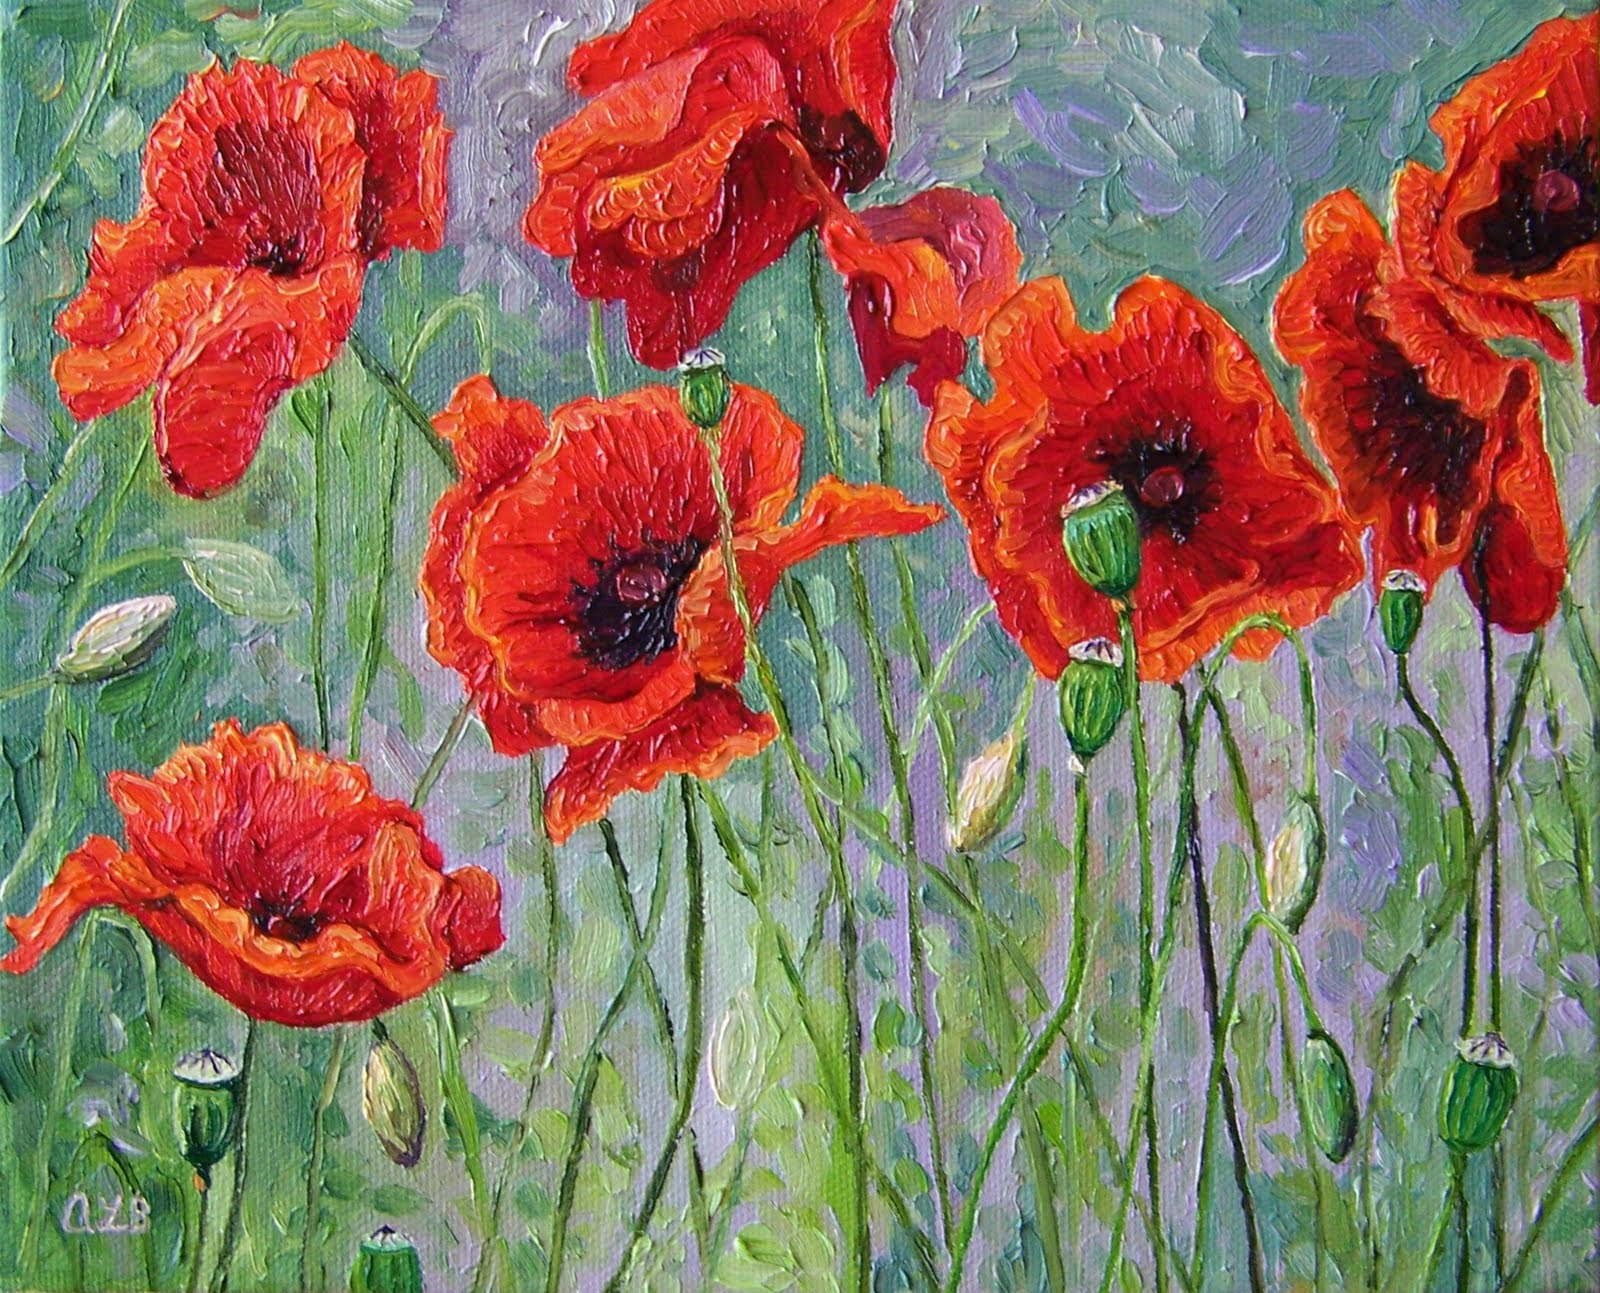 Audra S Oil Paintings Red Poppies 2011 8 X 10 Quot